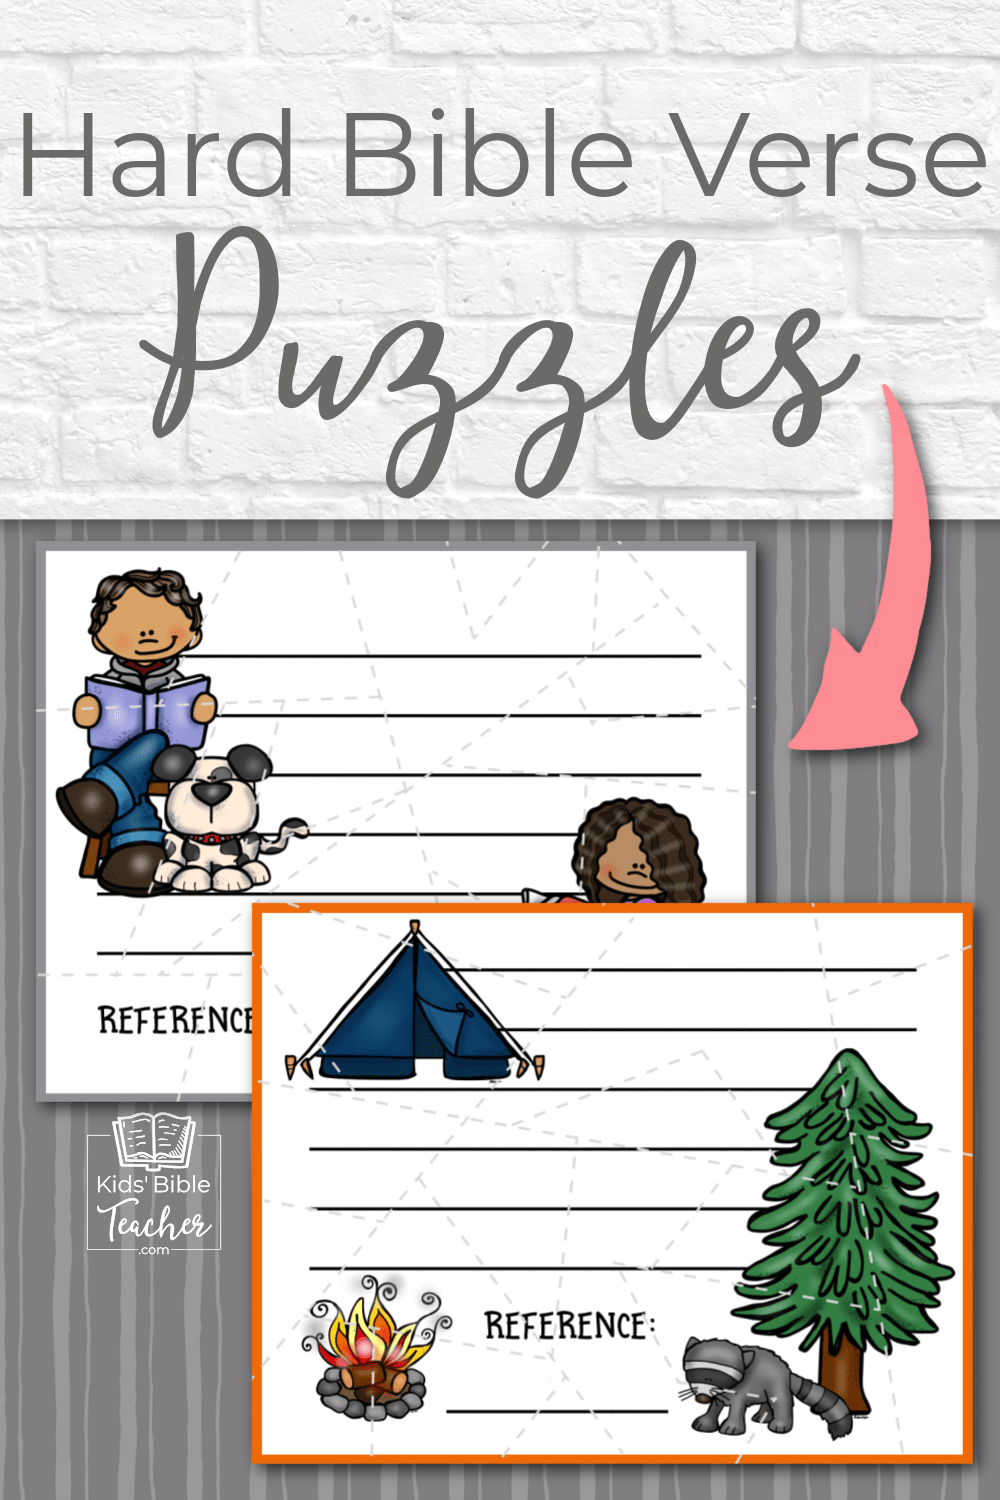 These Bible verse puzzles are a great way for older kids to work on a memory verse. (And, they're great to have on hand for a last minute class project!)